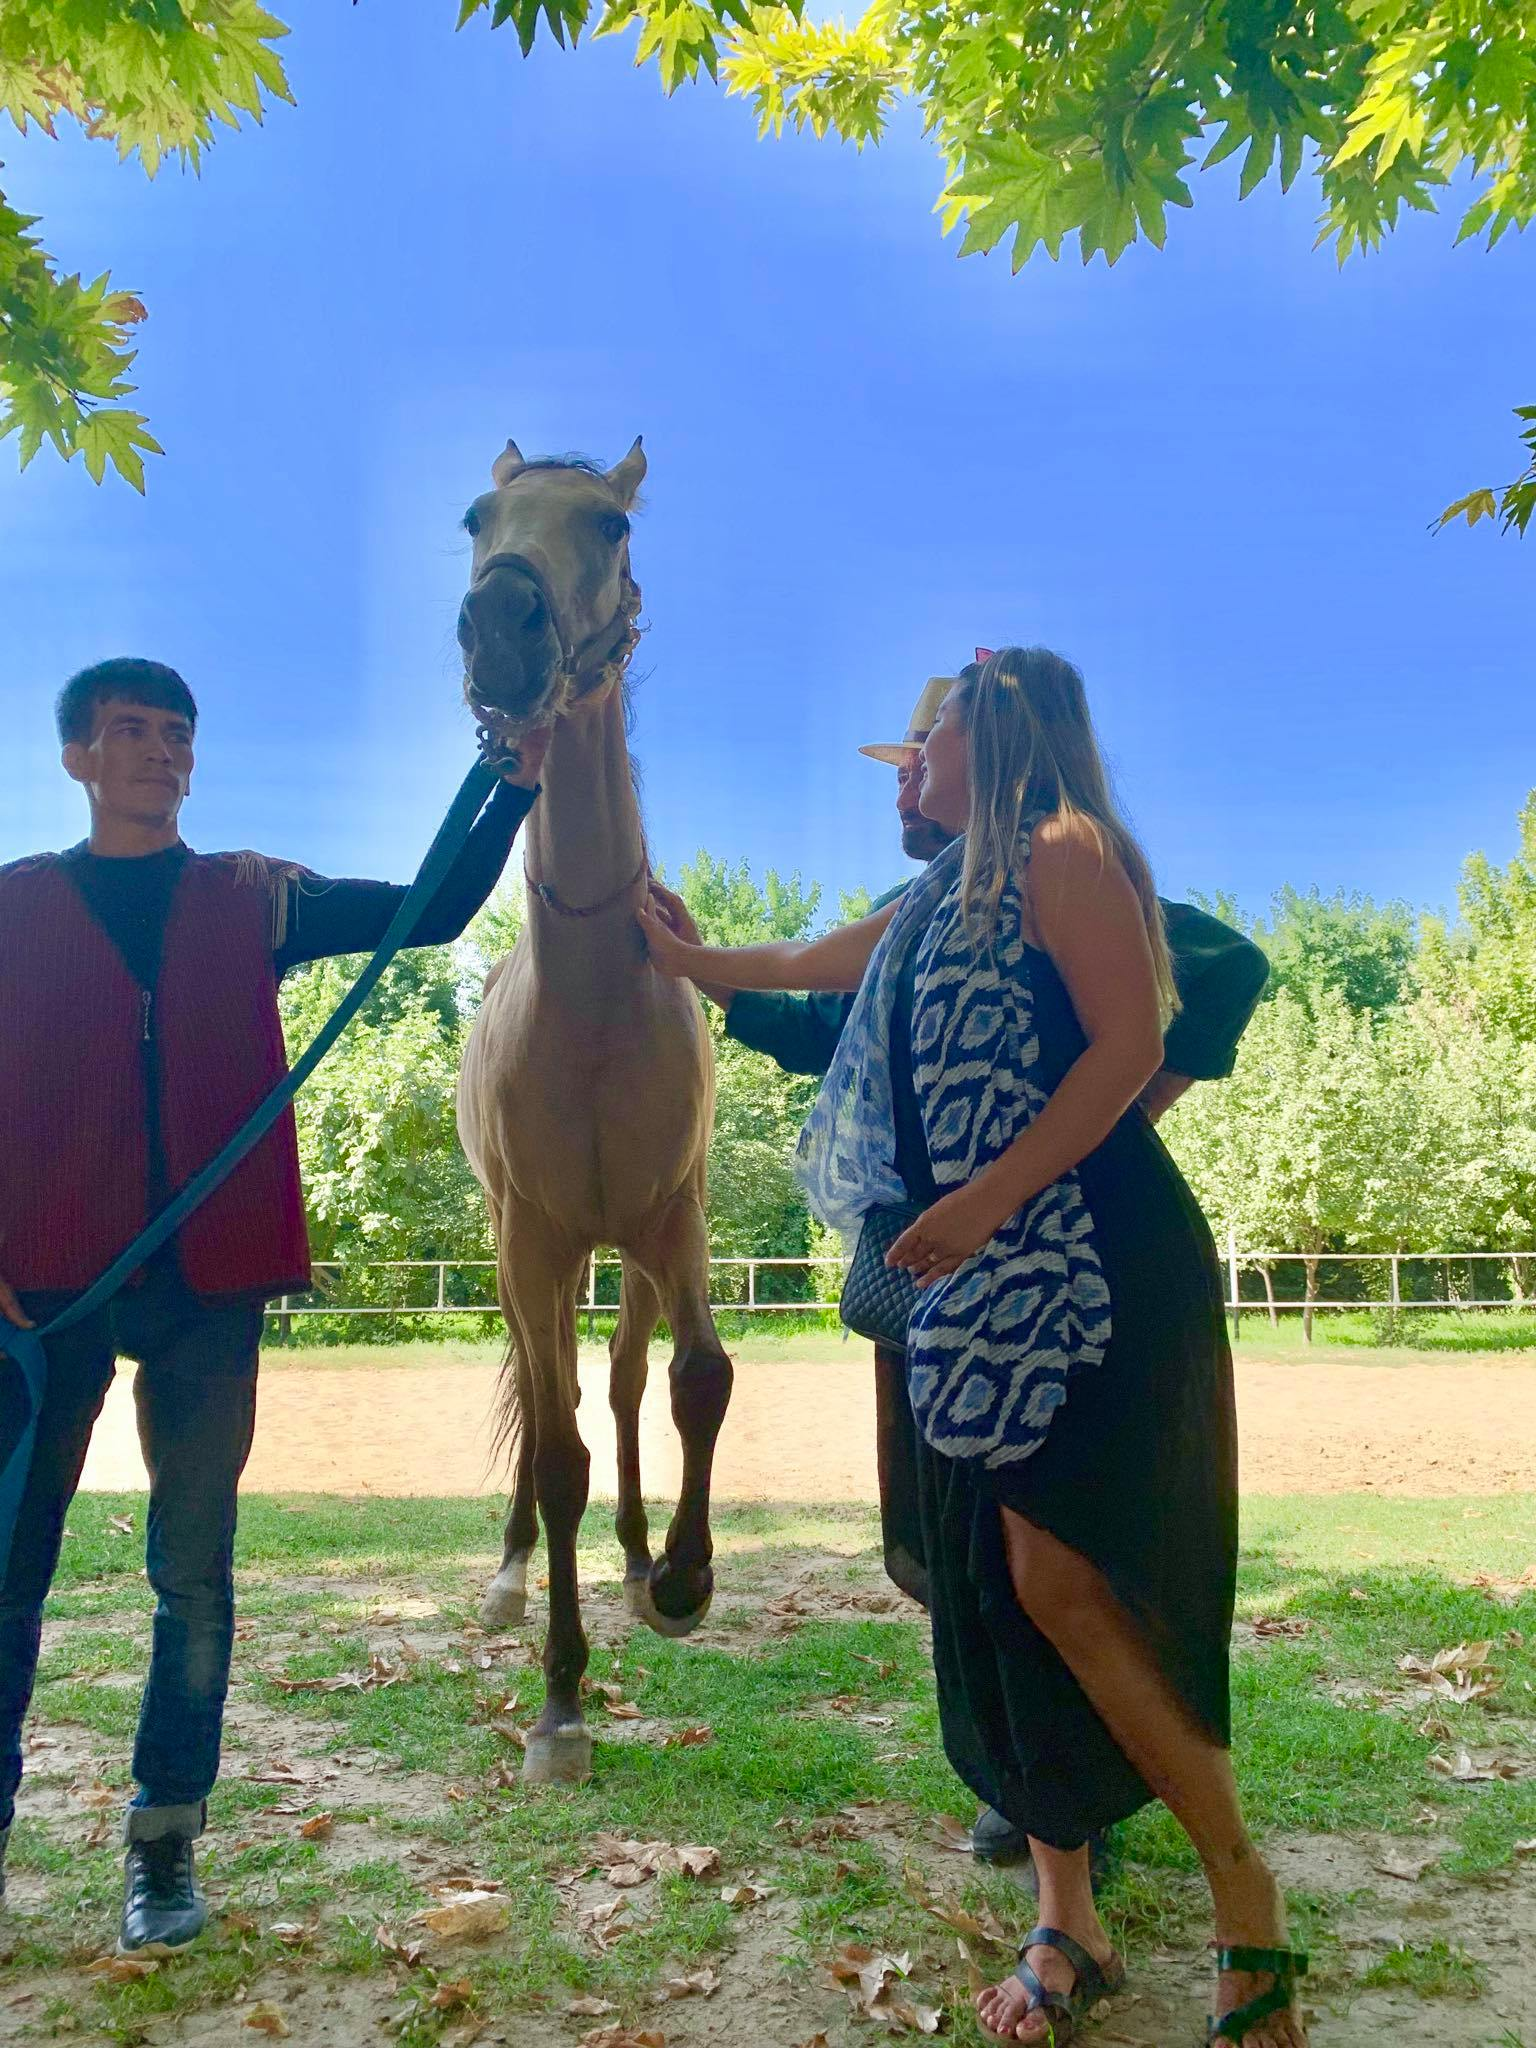 Kach Solo Travels in 2019 Visiting a Horse Farm and attending a wedding party4.jpg